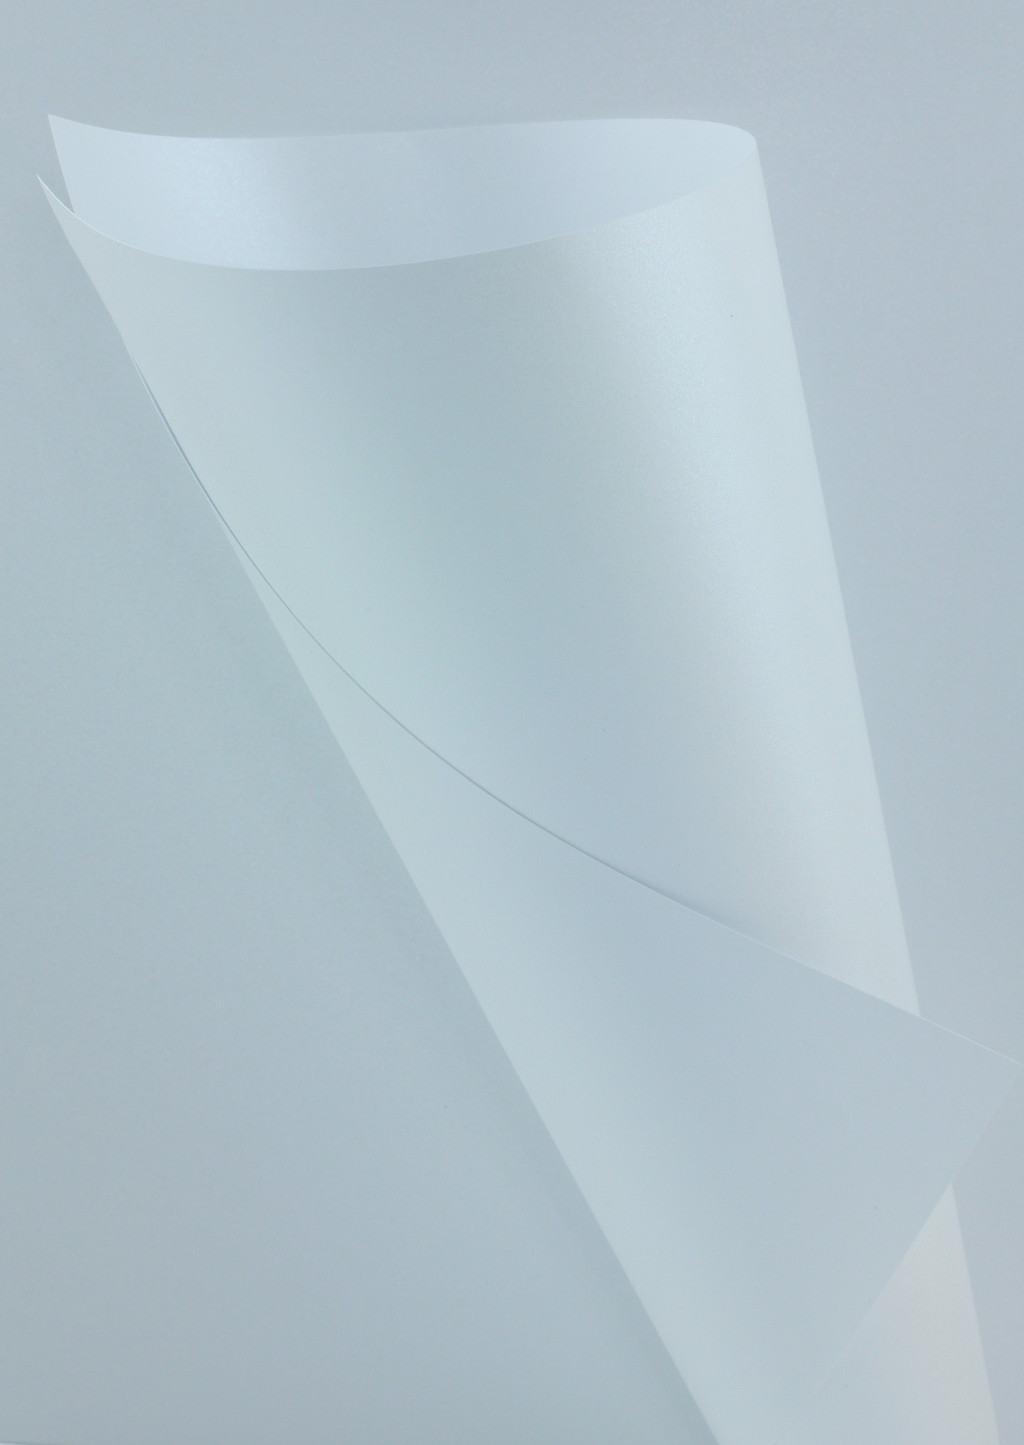 Pearlescent White Silver Paper 120gsm